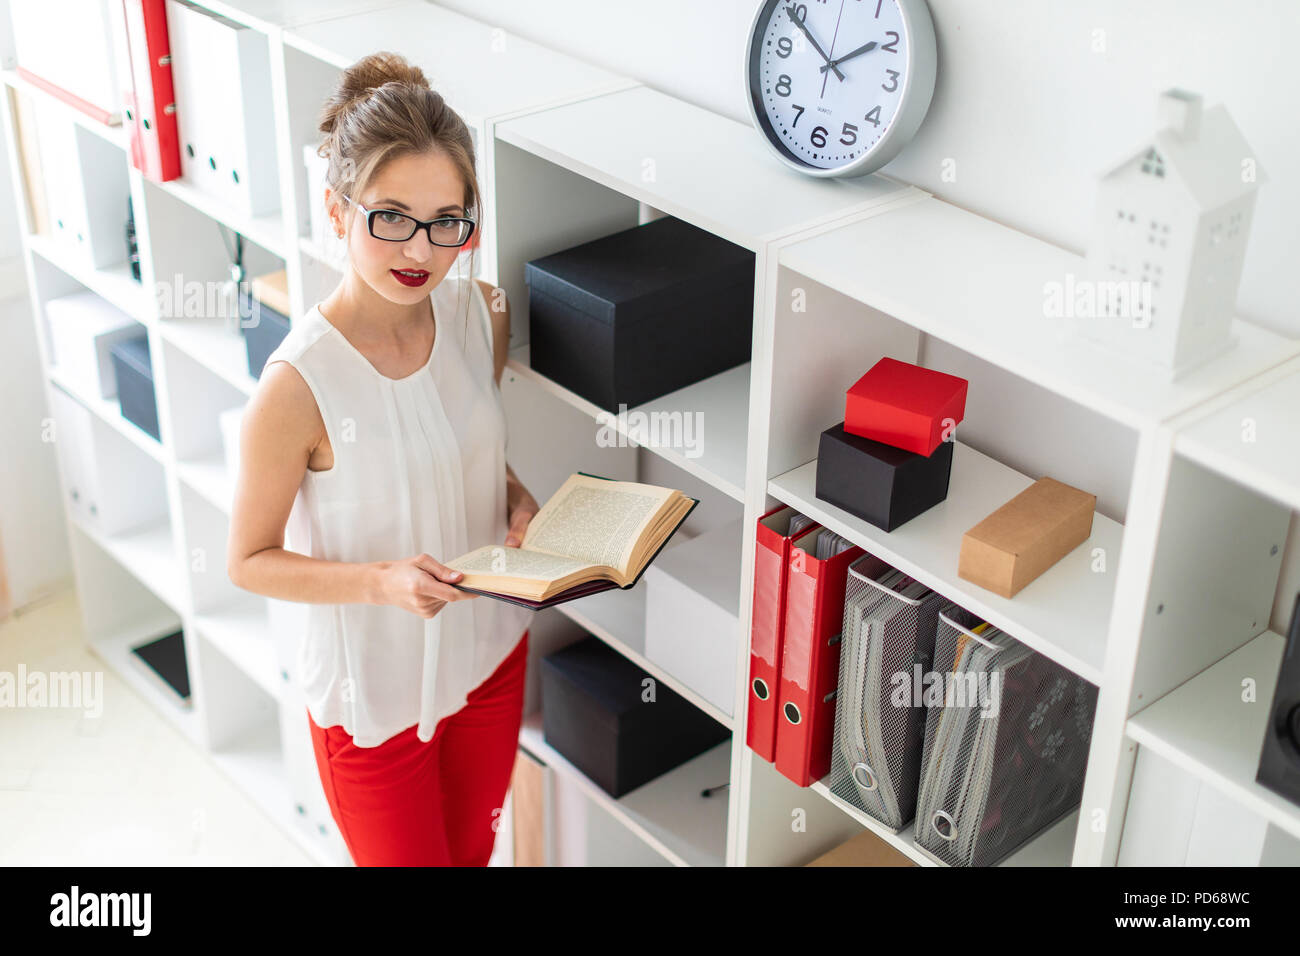 A young girl stands near the shelf and holds an open book in her hands. - Stock Image